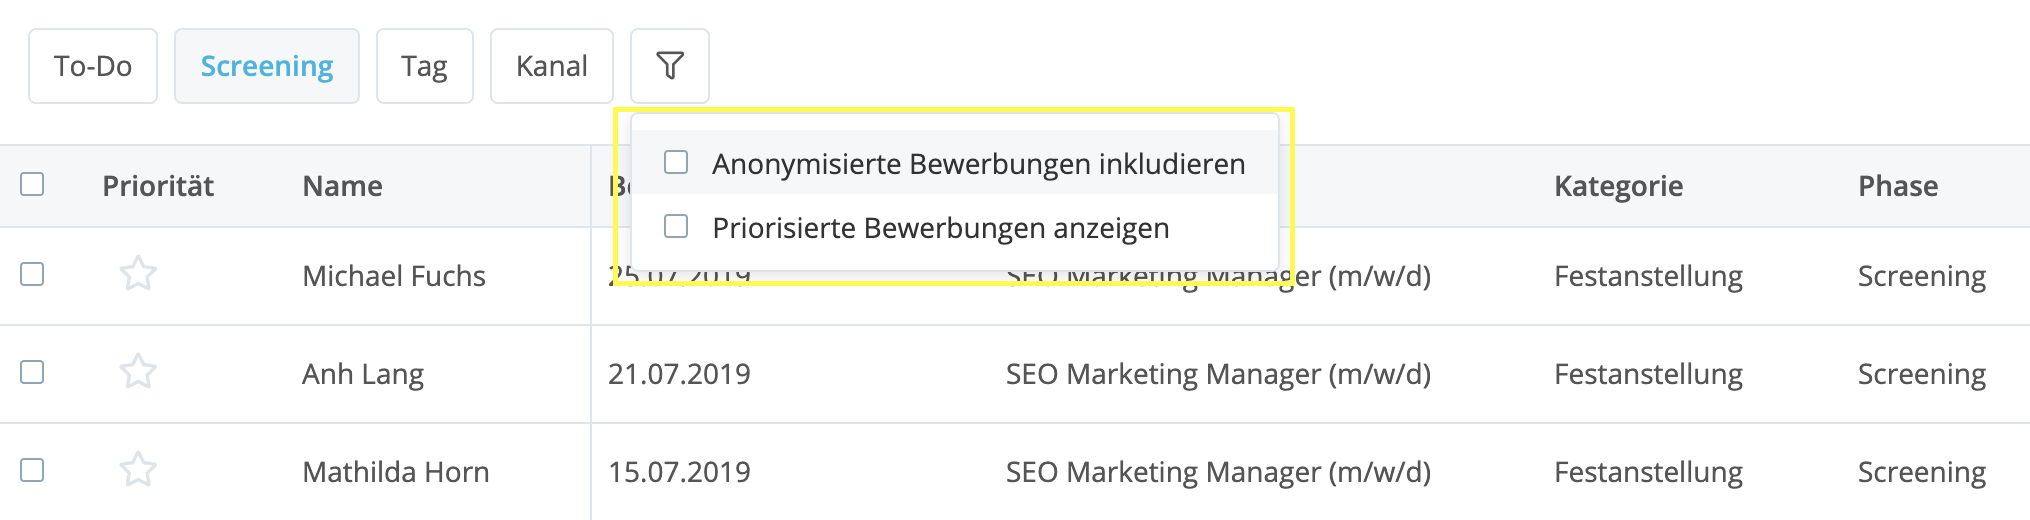 recruiting-applicantlist-applications_de.png